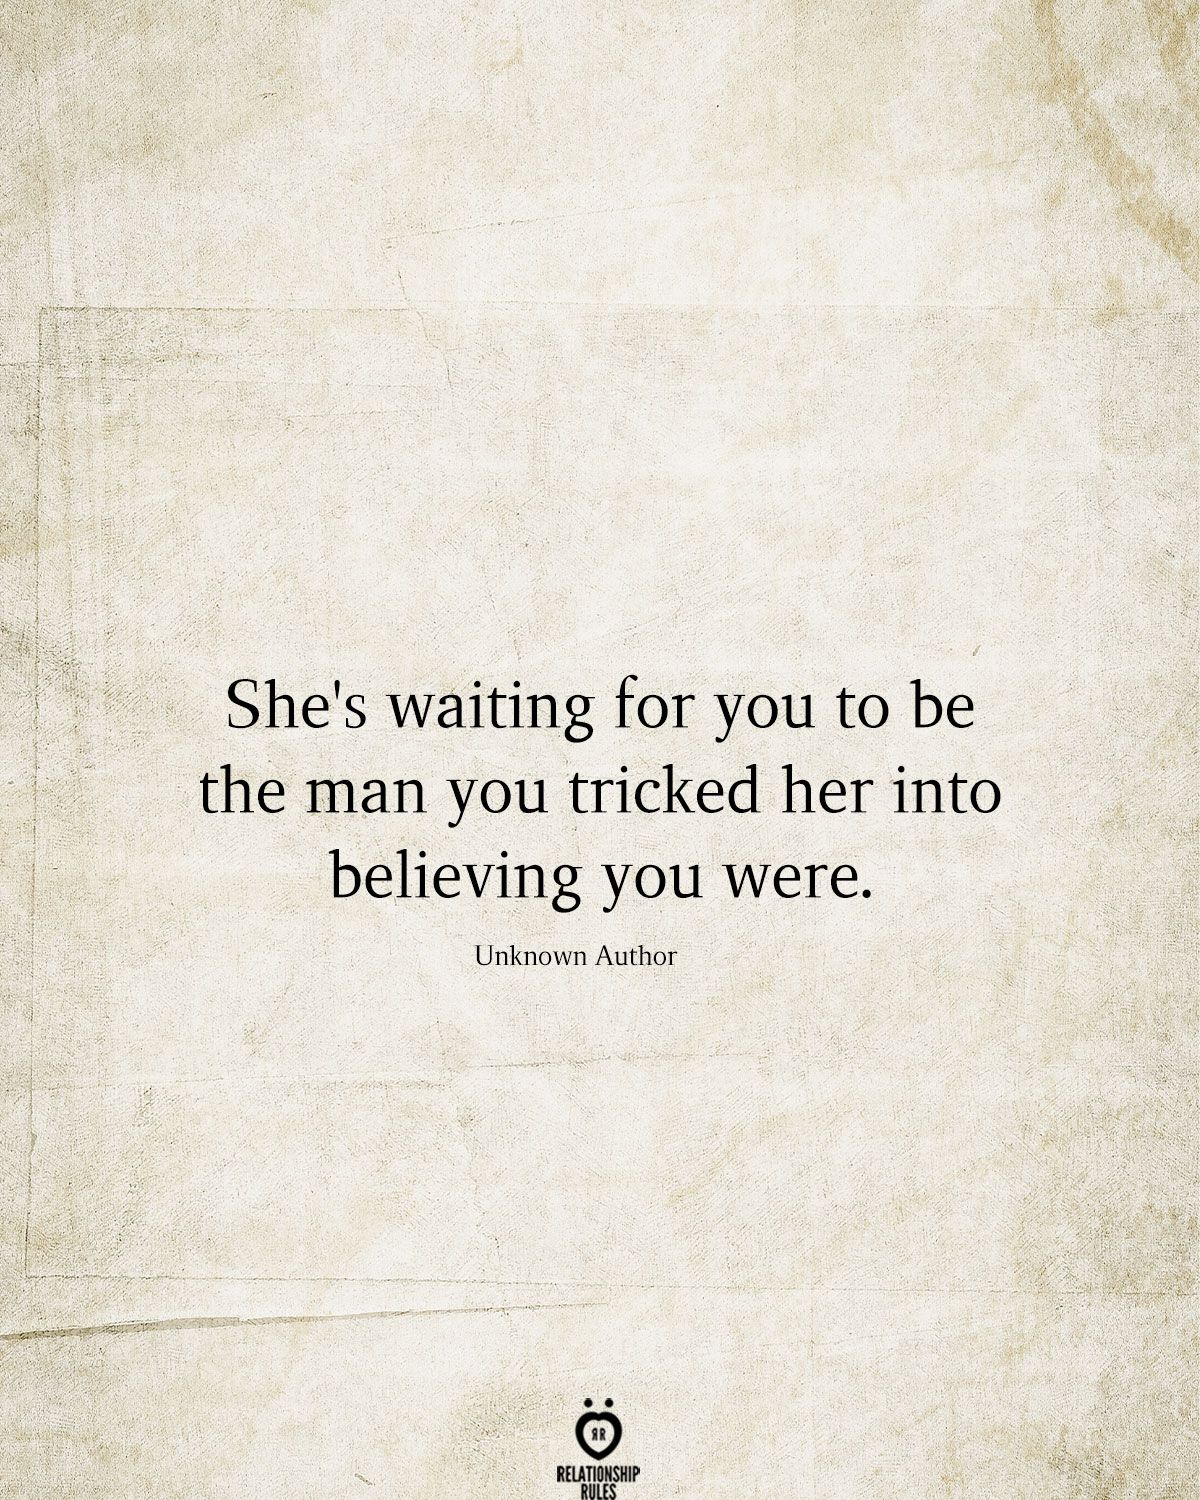 She's waiting for you to be the man you tricked her into believing you were.  Unknown Author